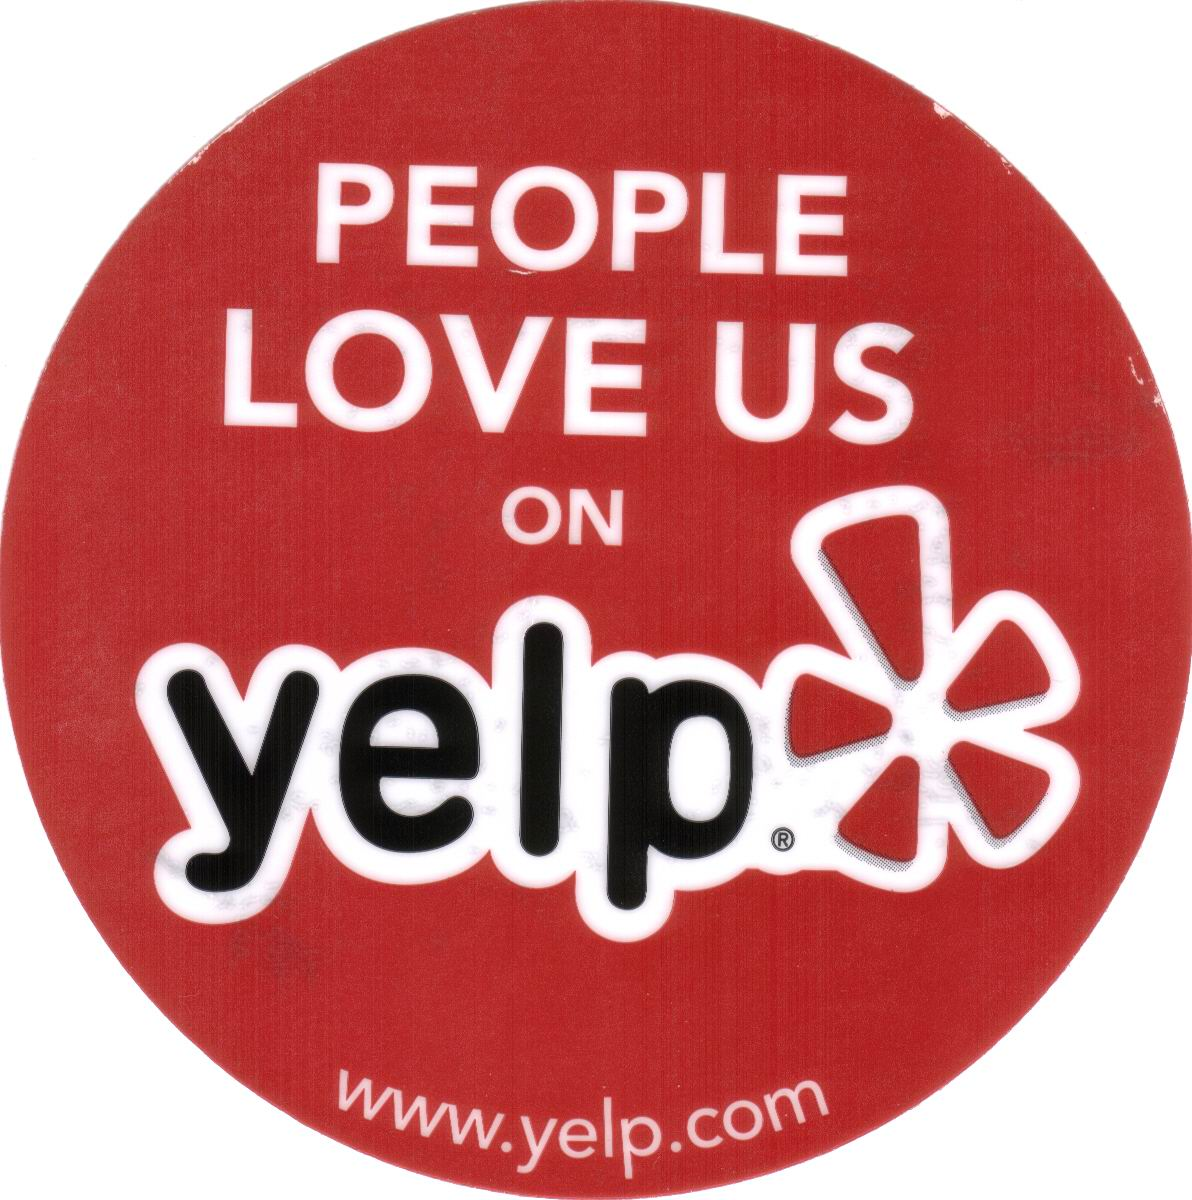 Click to check us out on Yelp!